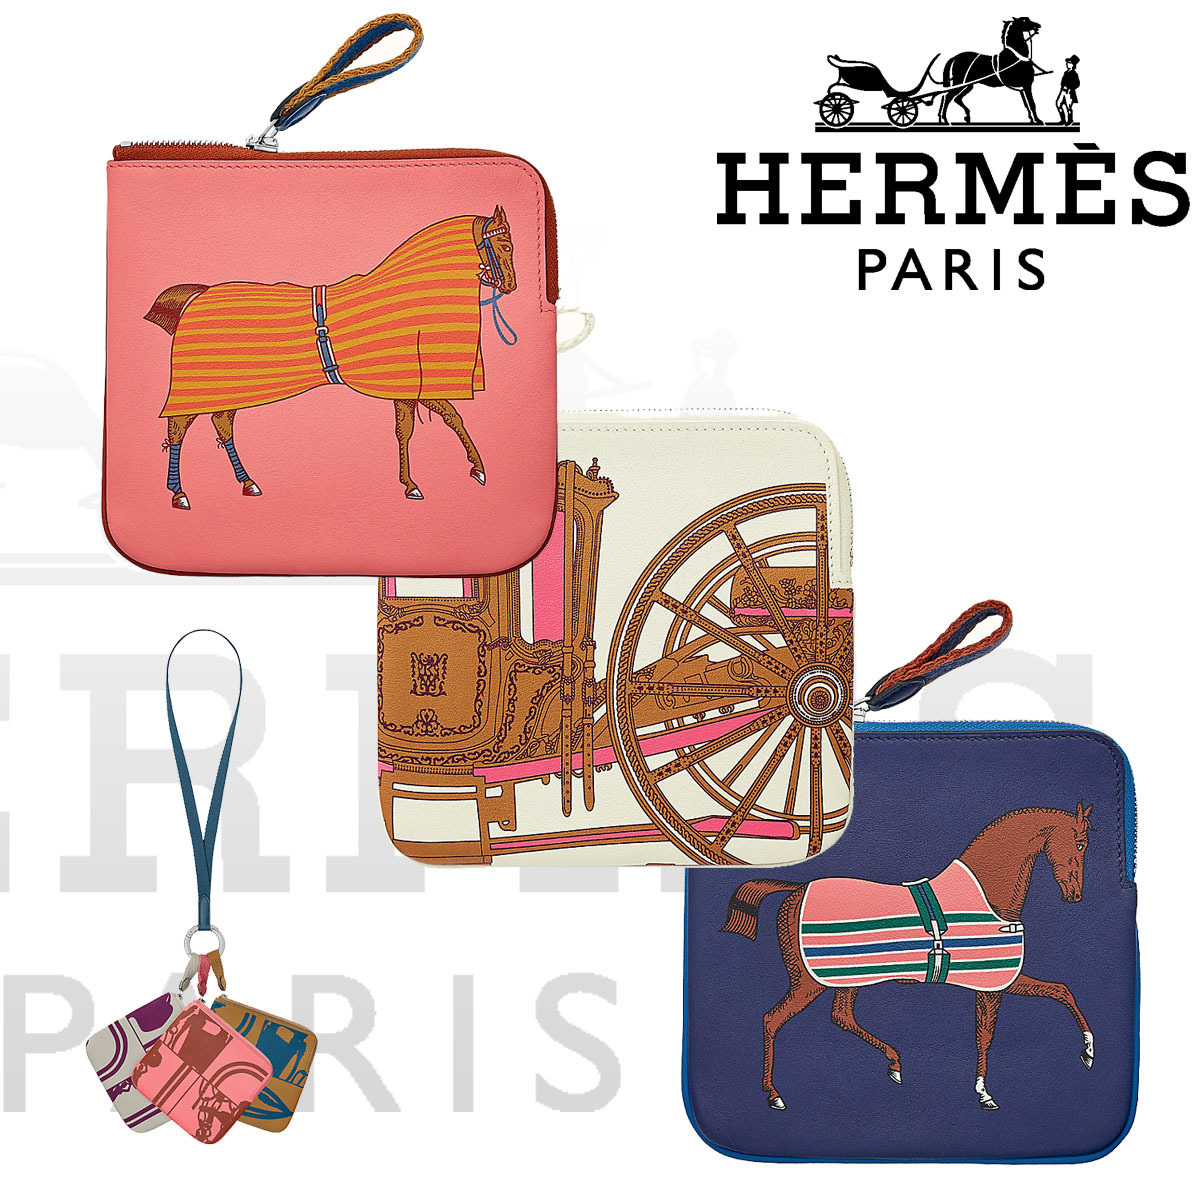 HERMES ポーチ カレ・ポケット Carre Pocket (HERMES/ポーチ) H077638CKAA  H077639CKAA  H077718CKAA